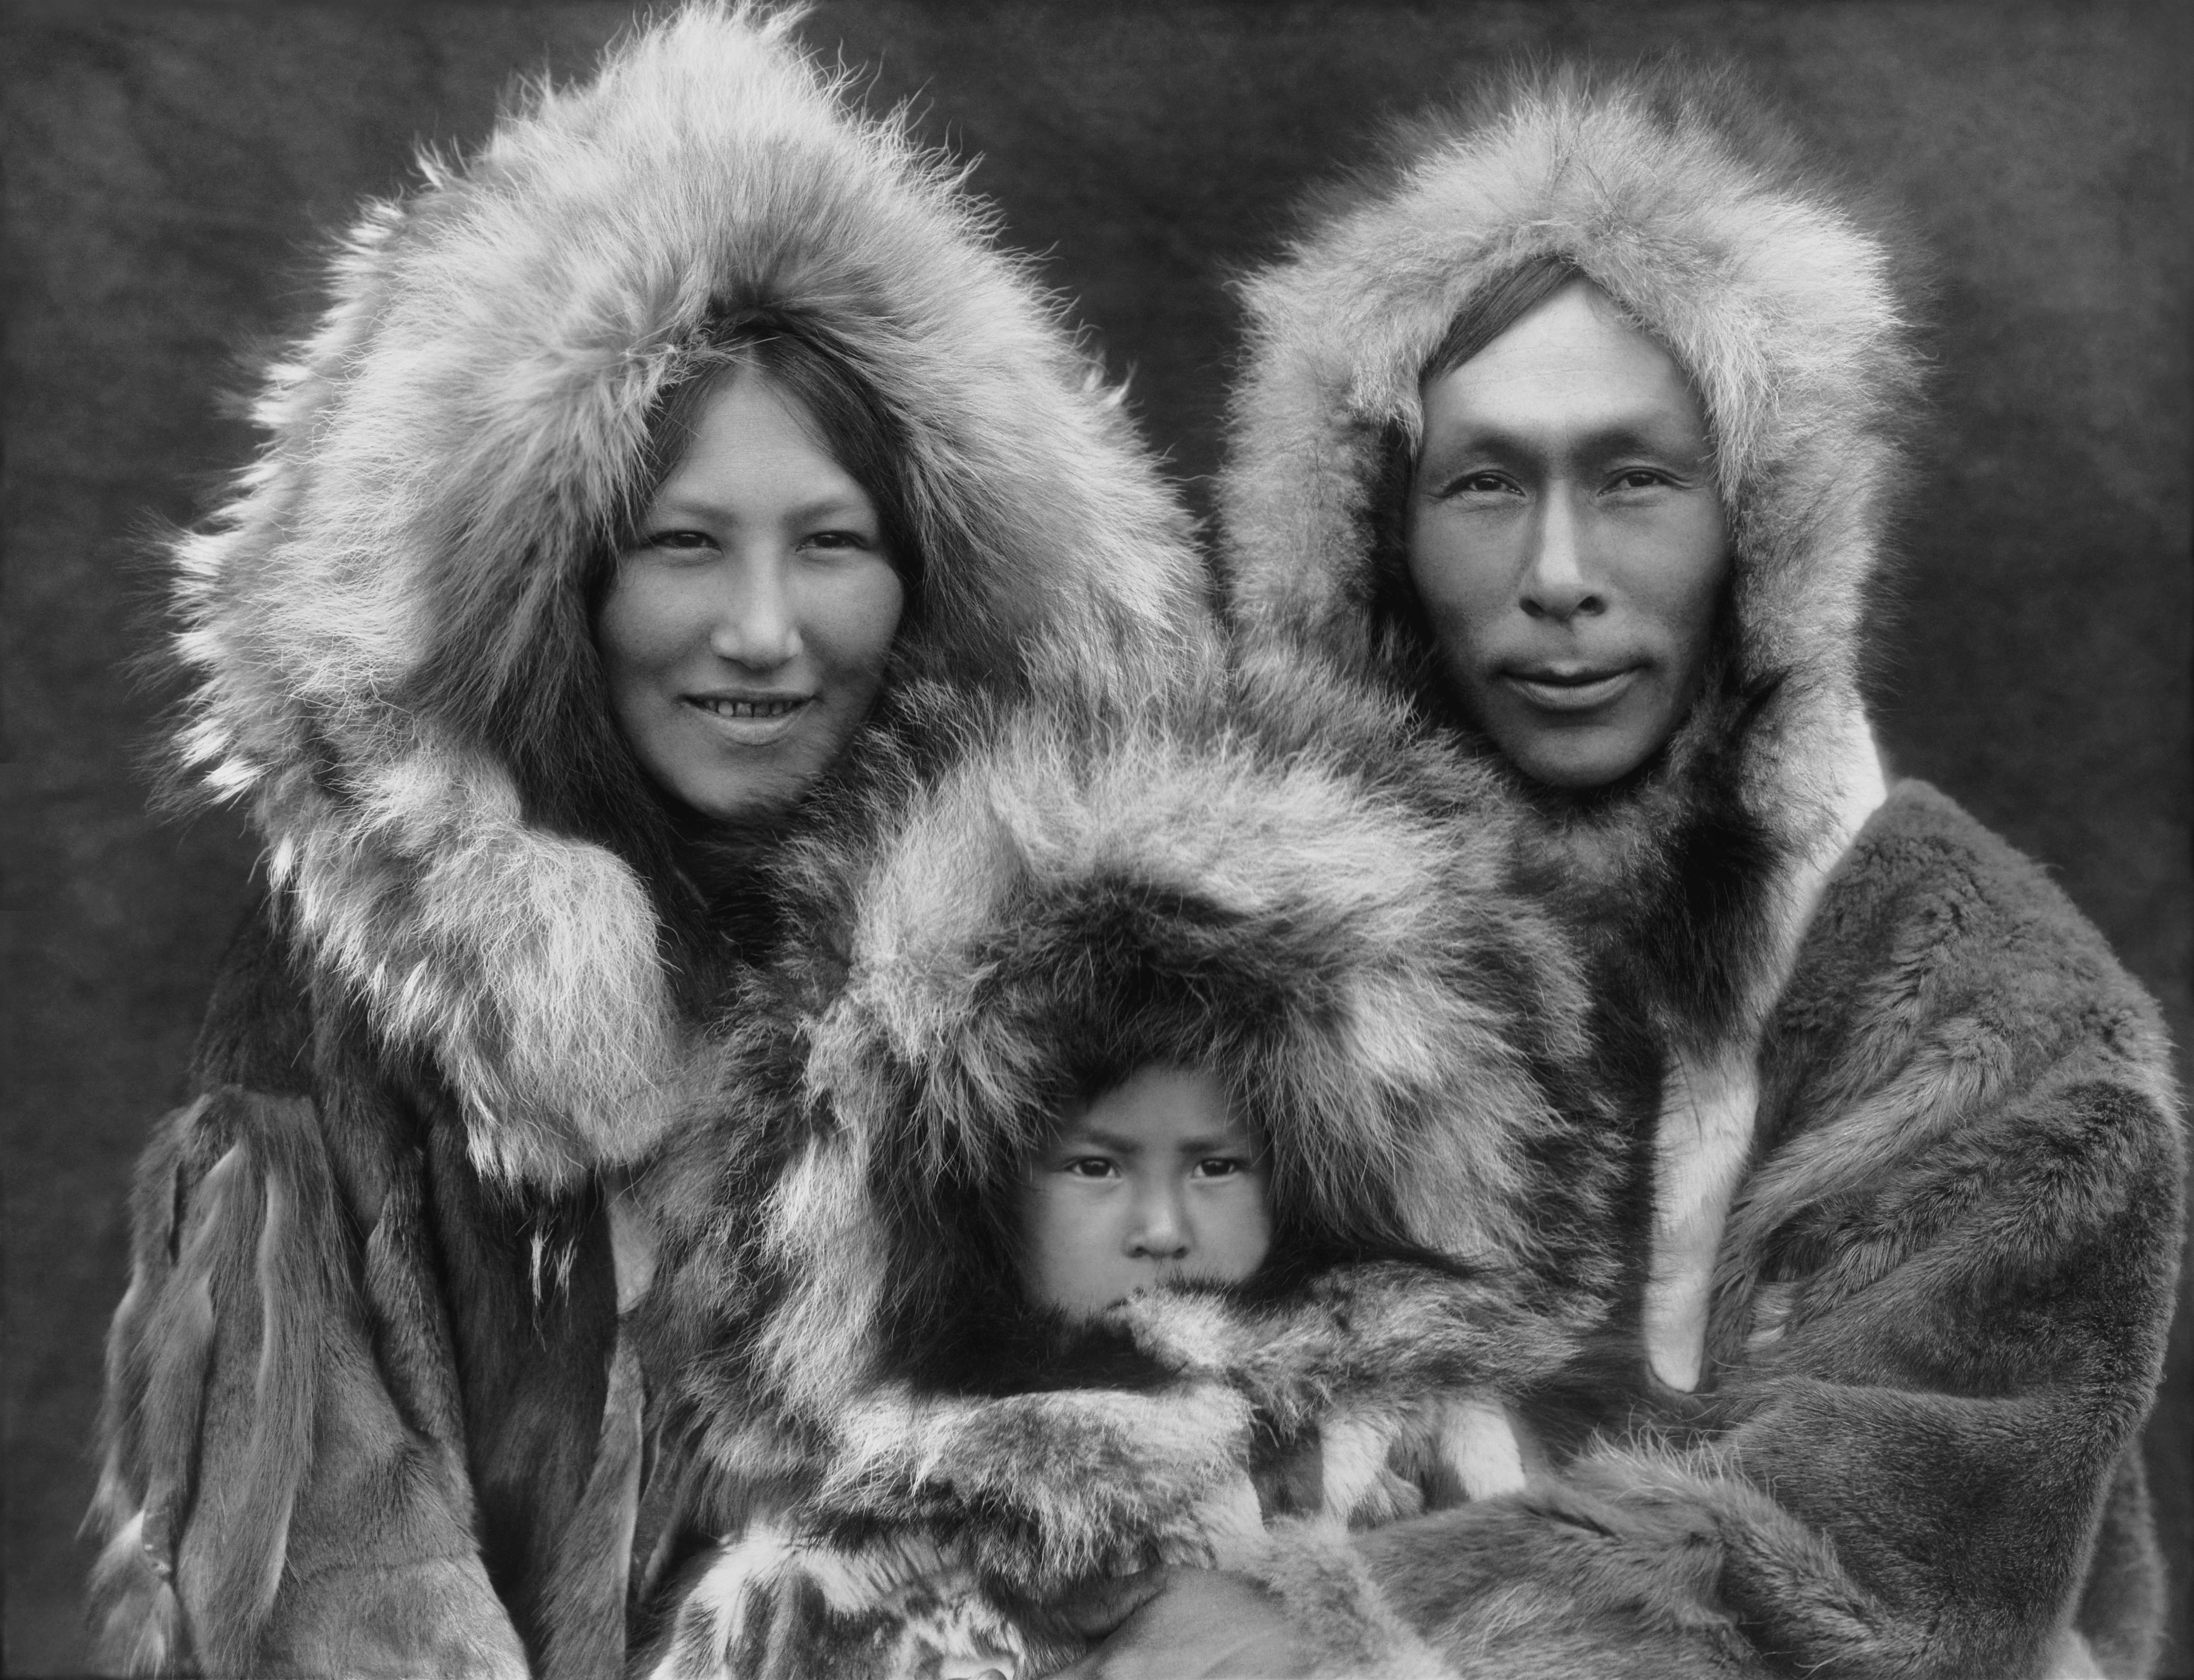 Inupiat_Family_from_Noatak%2C_Alaska%2C_